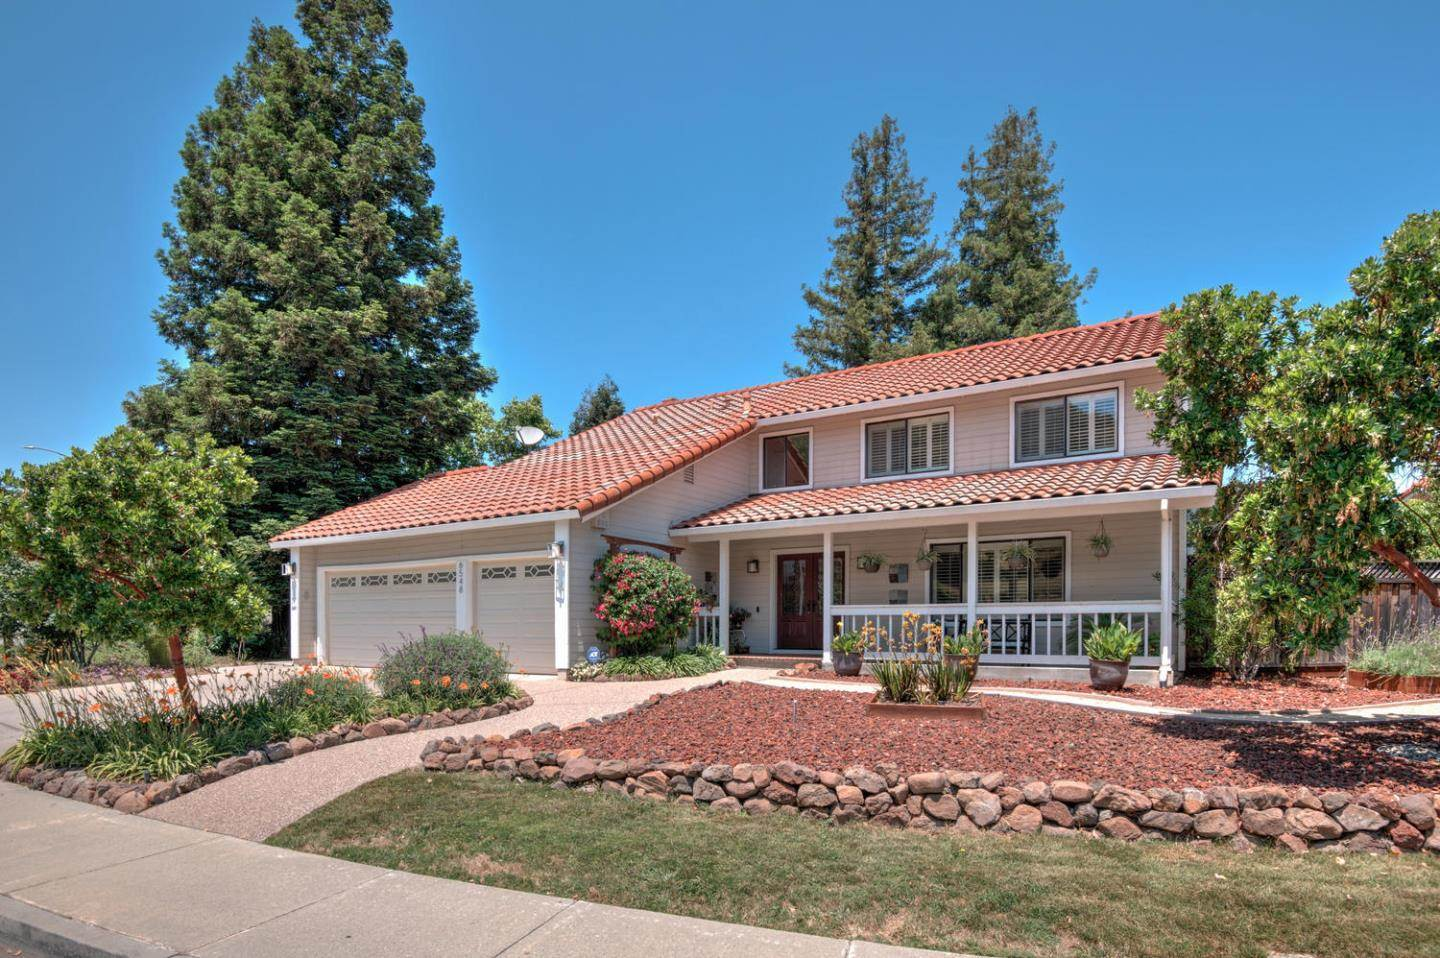 6548 Whispering Pines DR, Almaden Valley, California